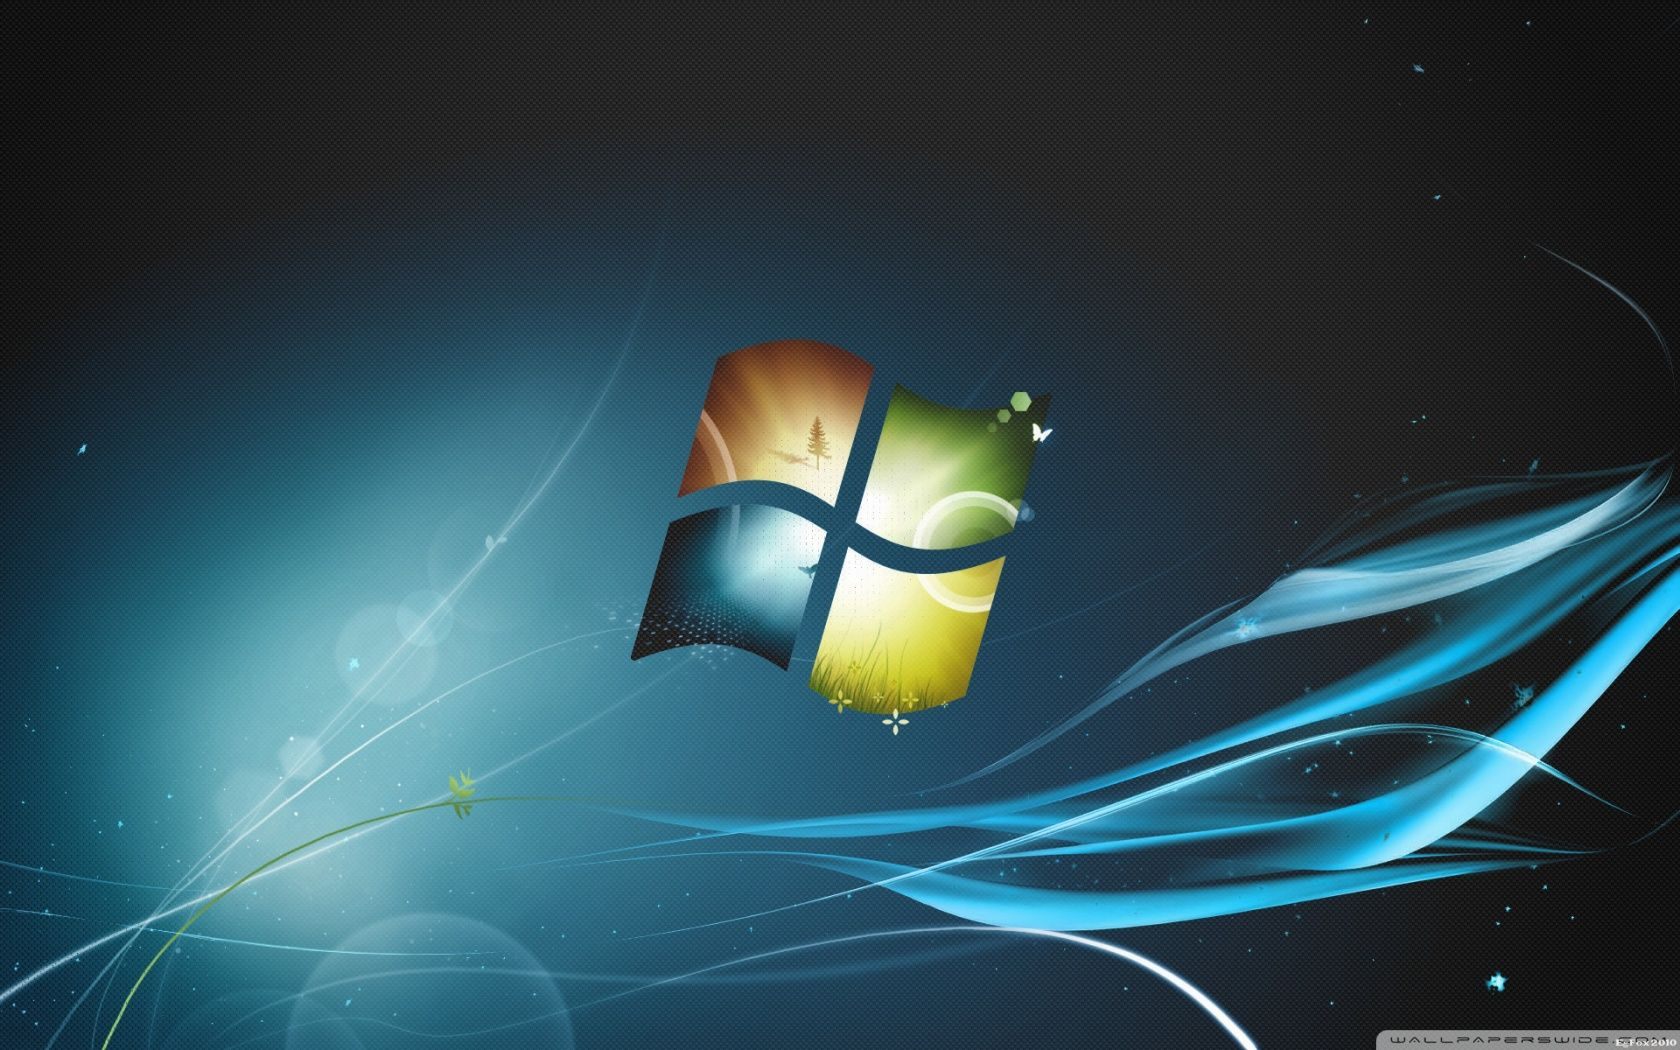 Windows Ultimate Desktop Backgrounds Wallpaper Windows Wallpaper Lenovo Wallpapers Windows Desktop Wallpaper